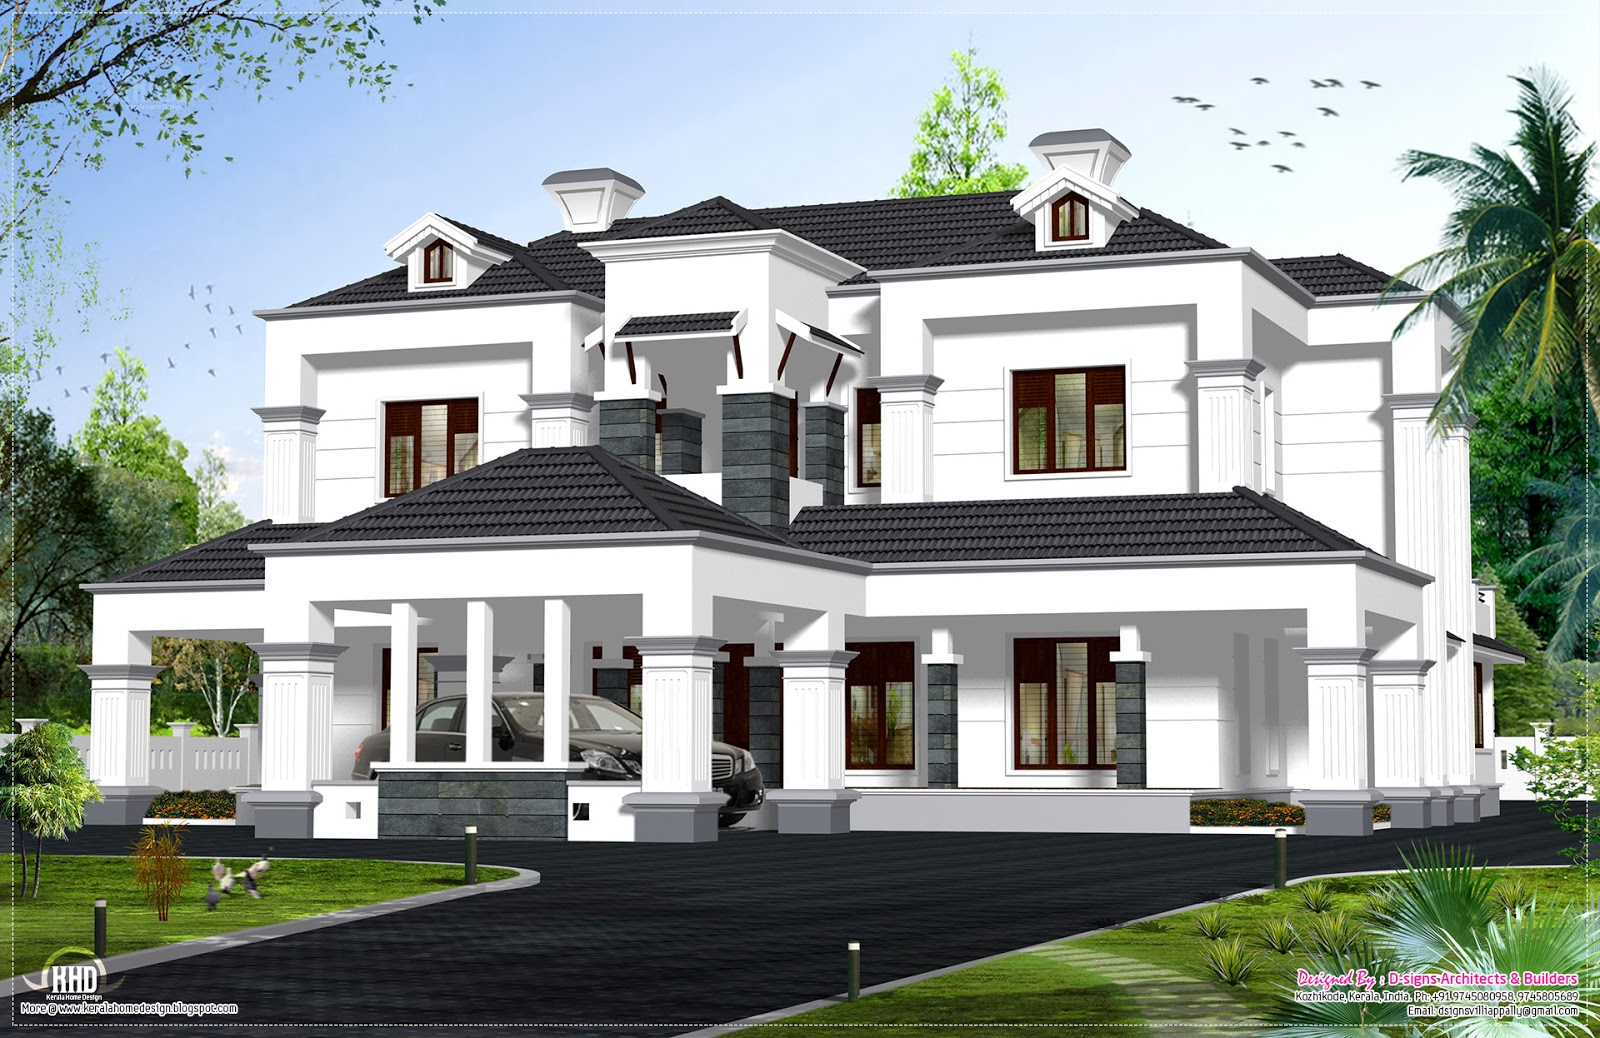 Kerala House Front Elevation Models : Victorian model house exterior kerala home design and